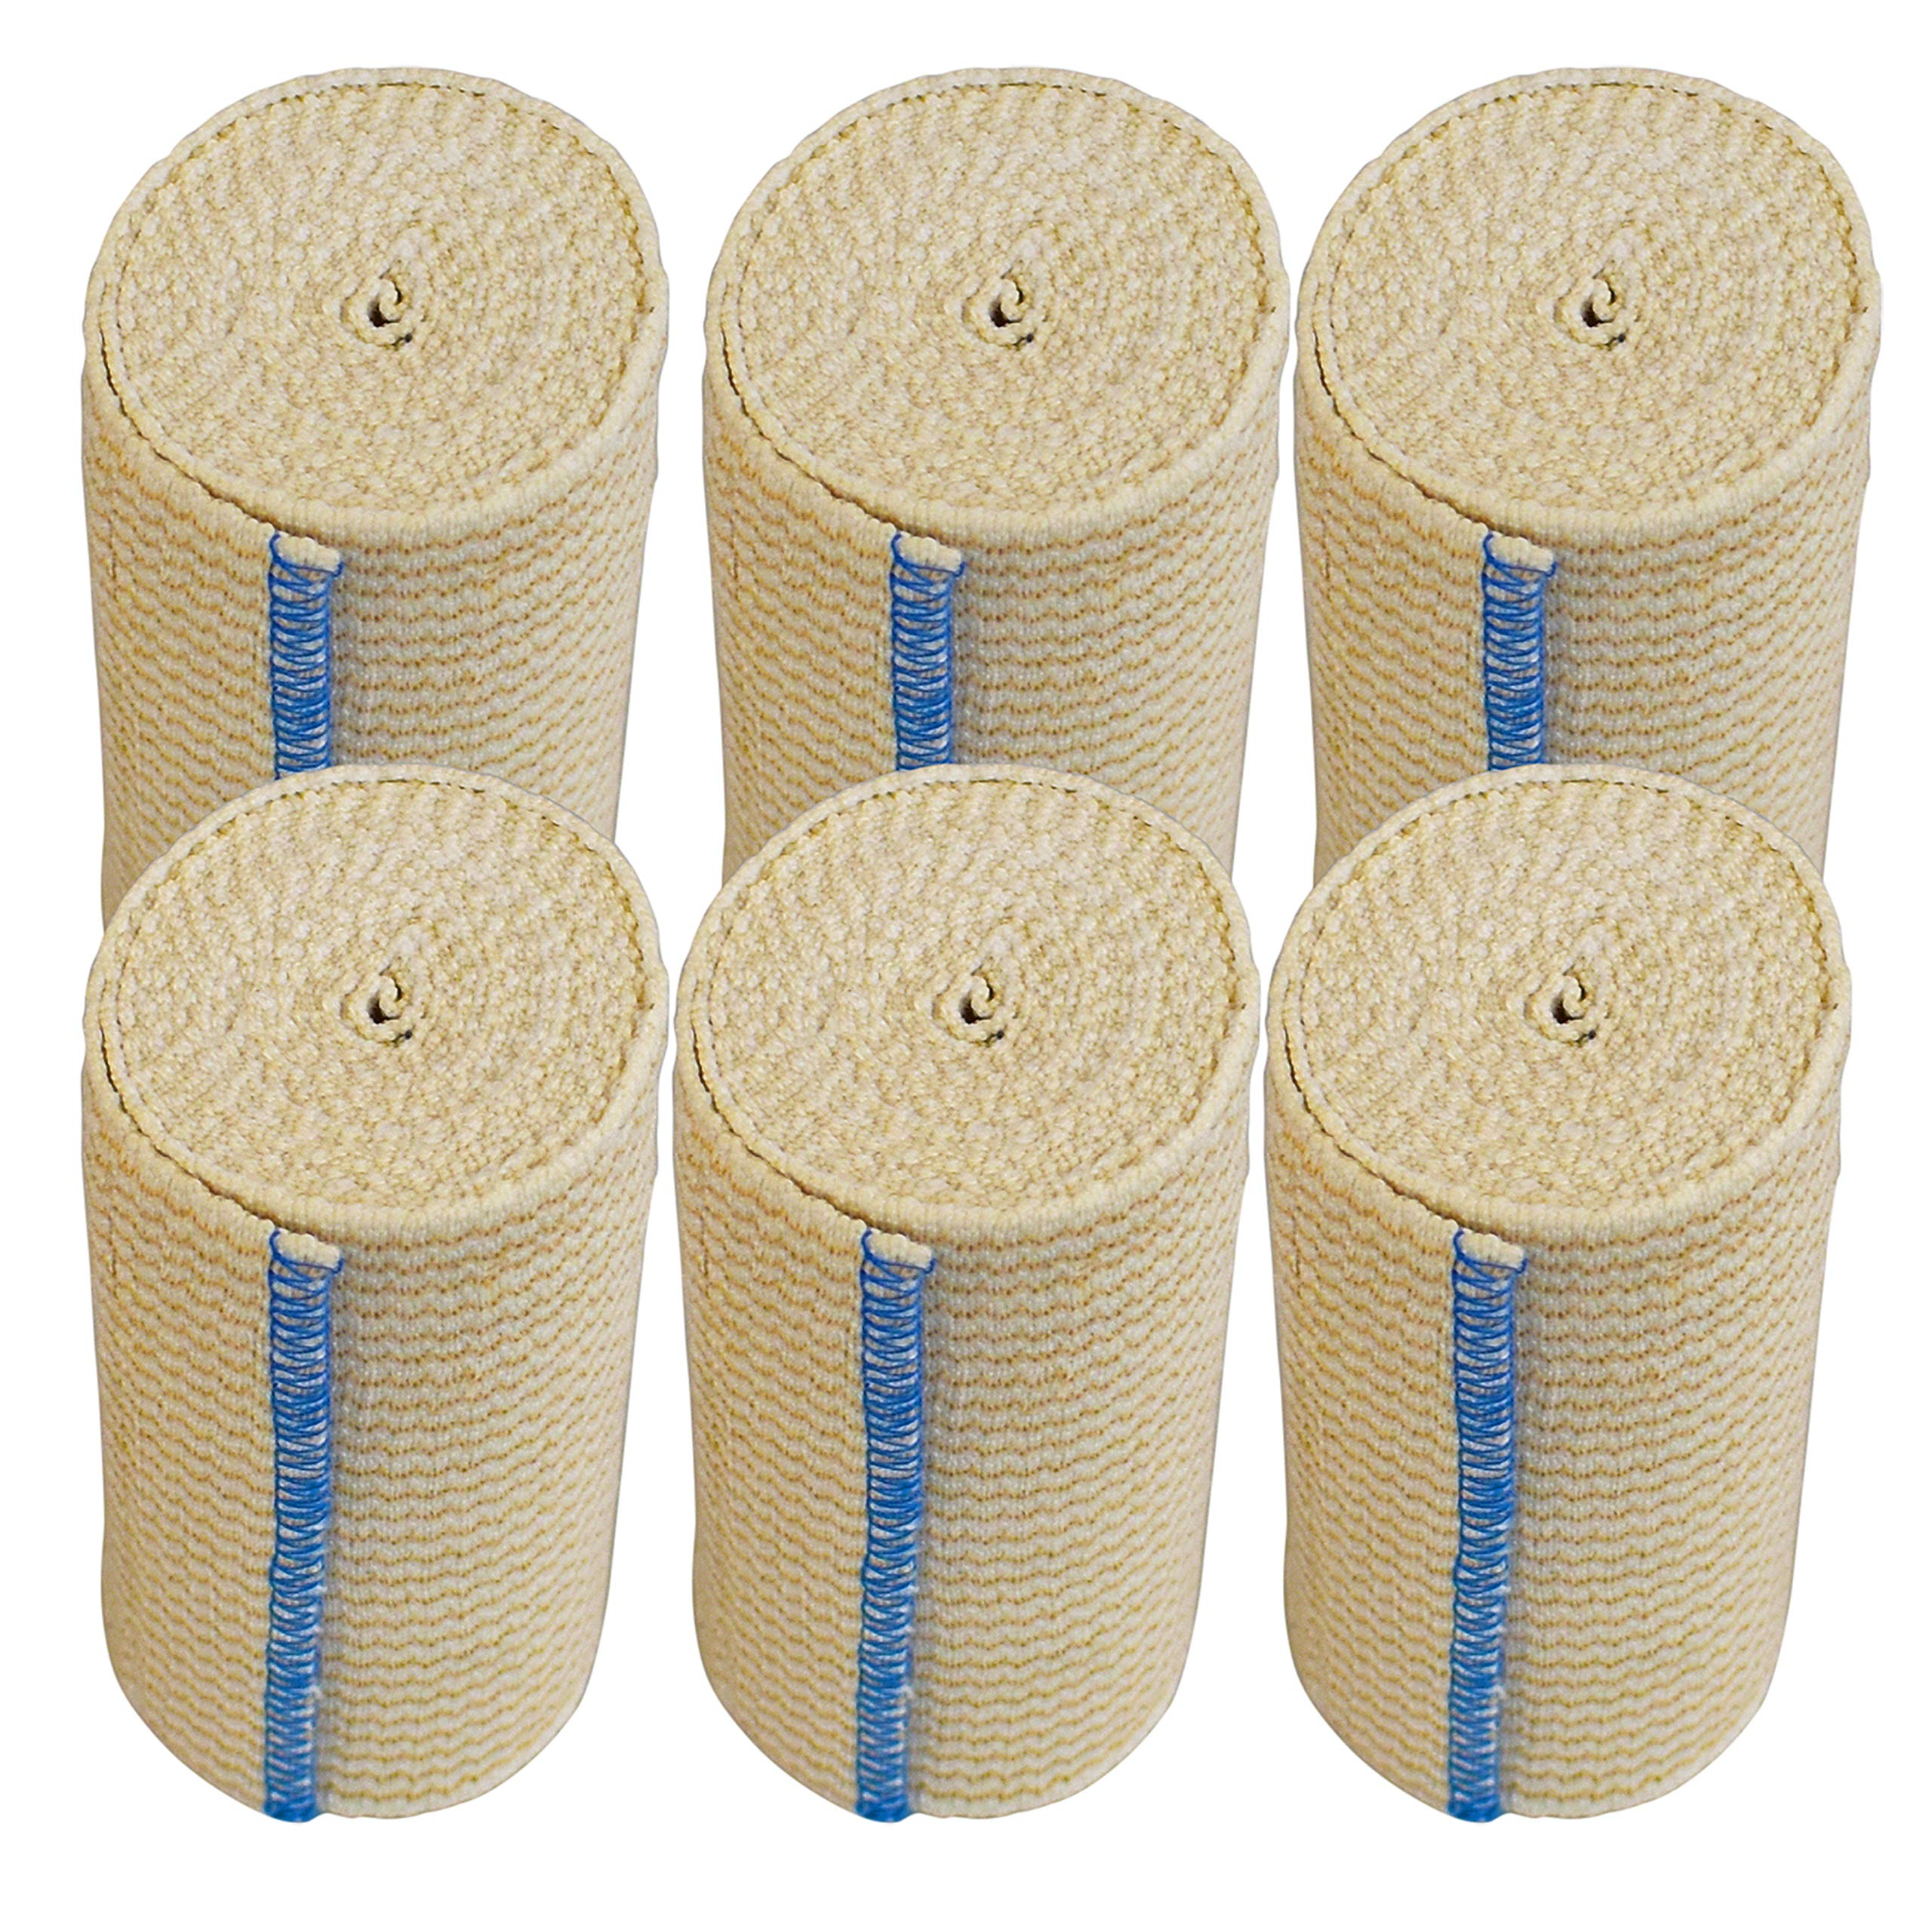 Nexskin Forever American Cotton Elastic Bandage Wrap with Hook and Loop Closure, 4'' Width (6 Pack)